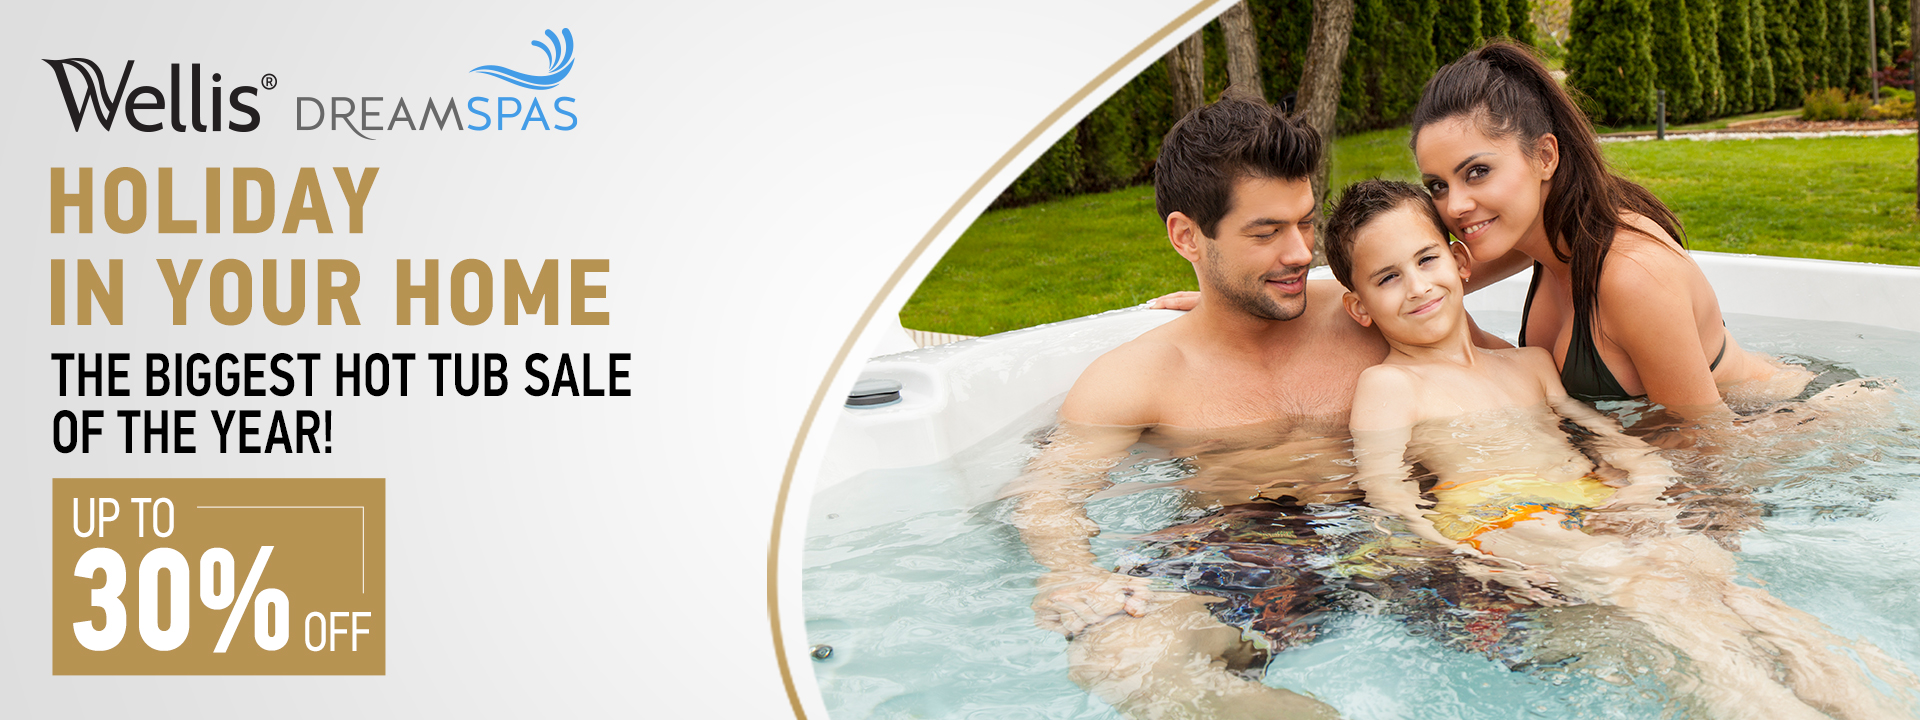 Dreamspas hot tub offer